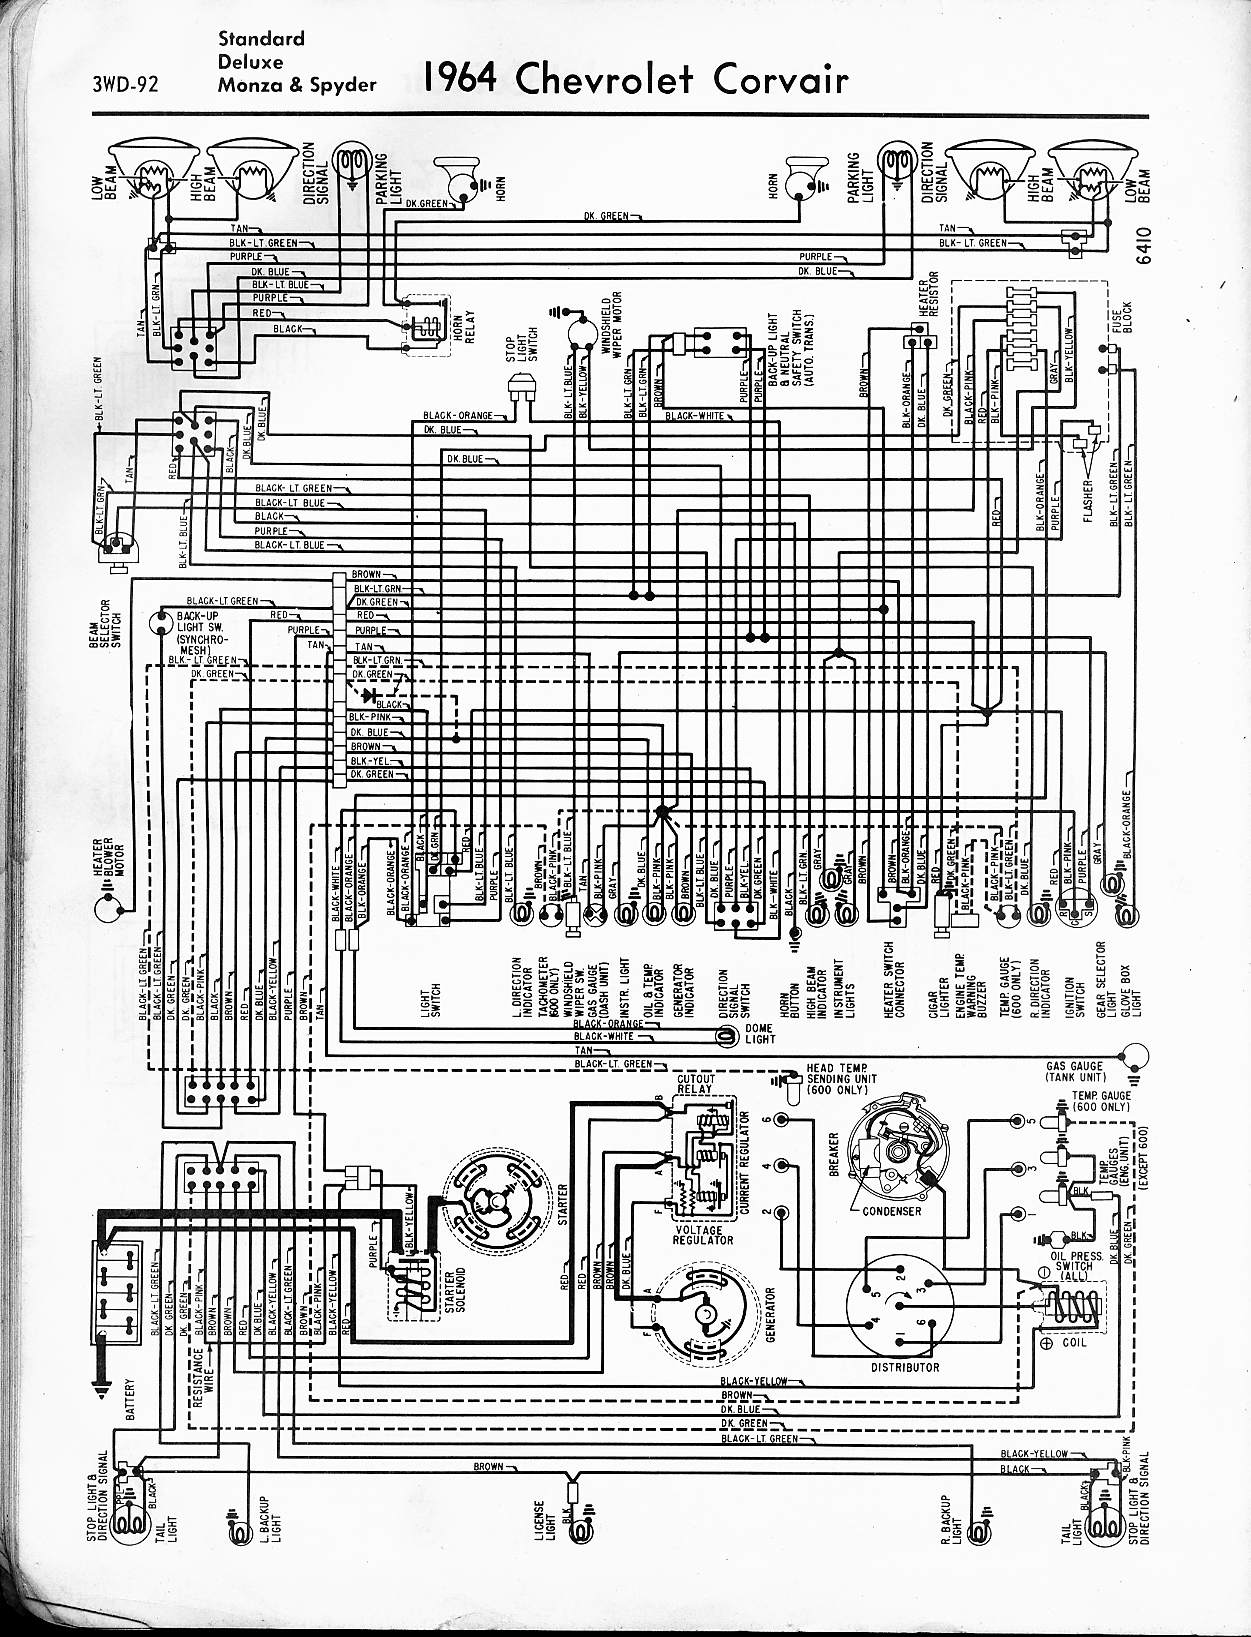 MWireChev64_3WD 092 57 65 chevy wiring diagrams 1965 corvair wiring diagram at nearapp.co